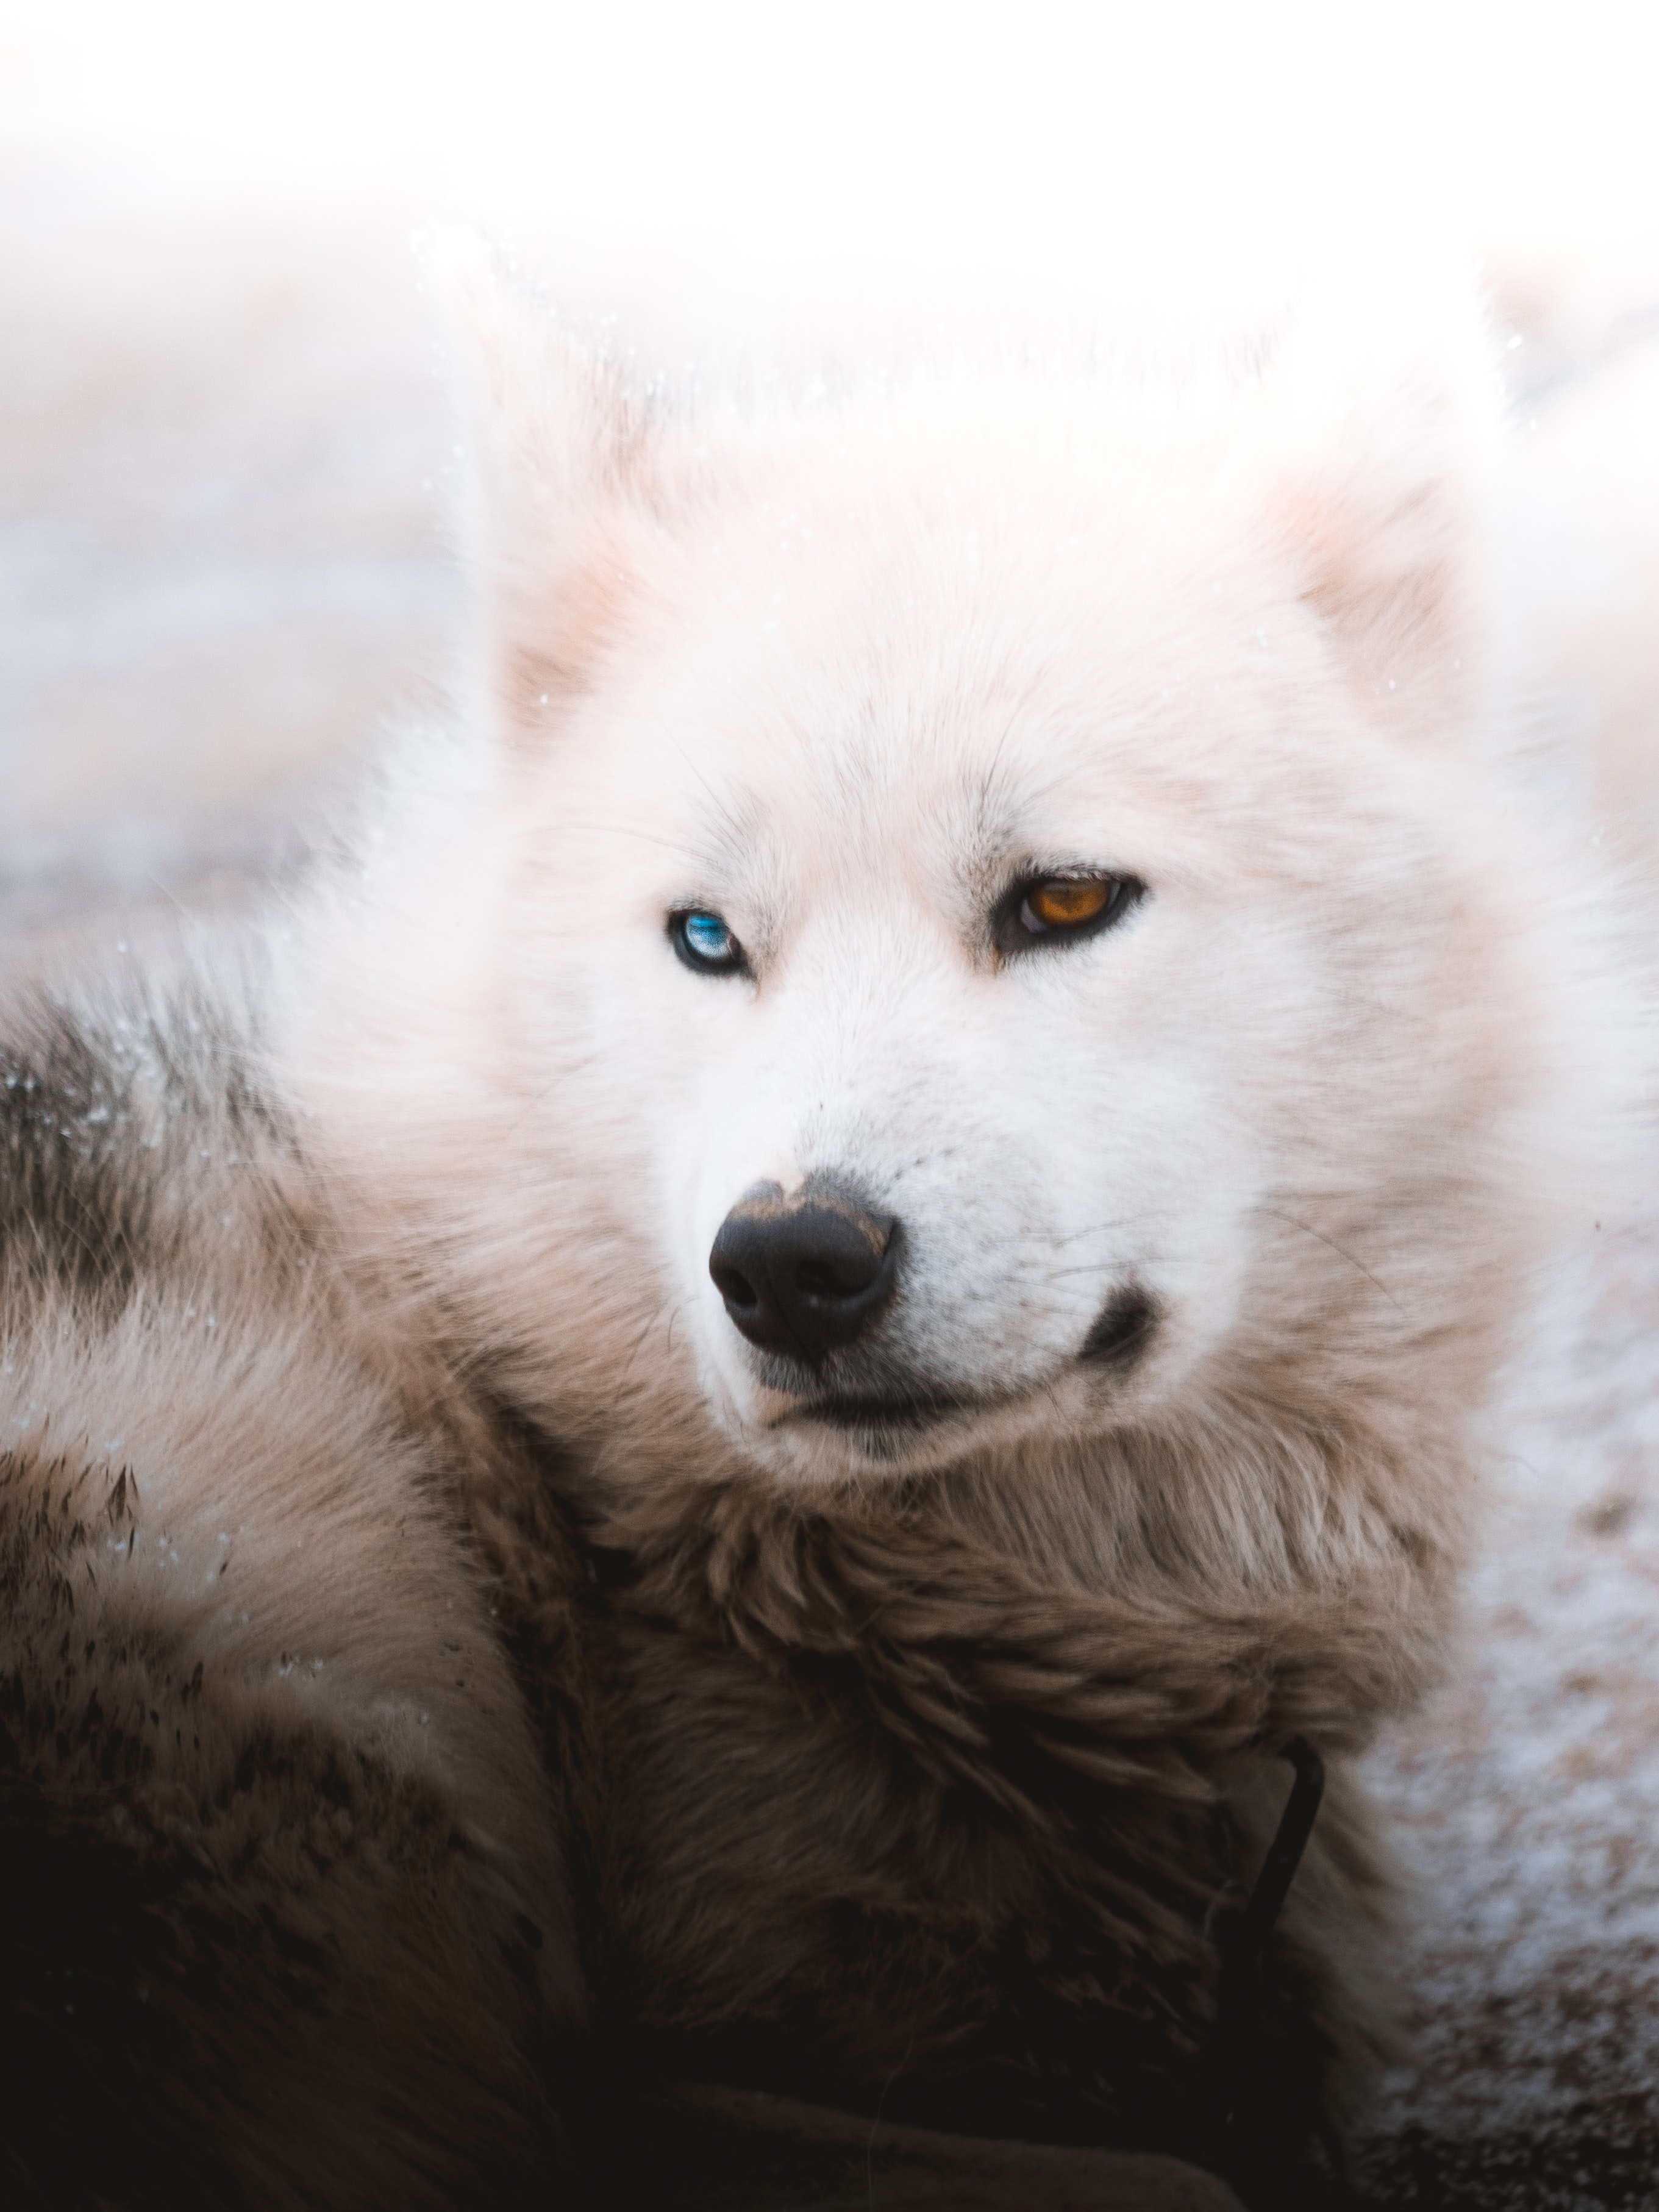 134255 Screensavers and Wallpapers Husky for phone. Download Animals, Fluffy, Dog, Pet, Husky pictures for free